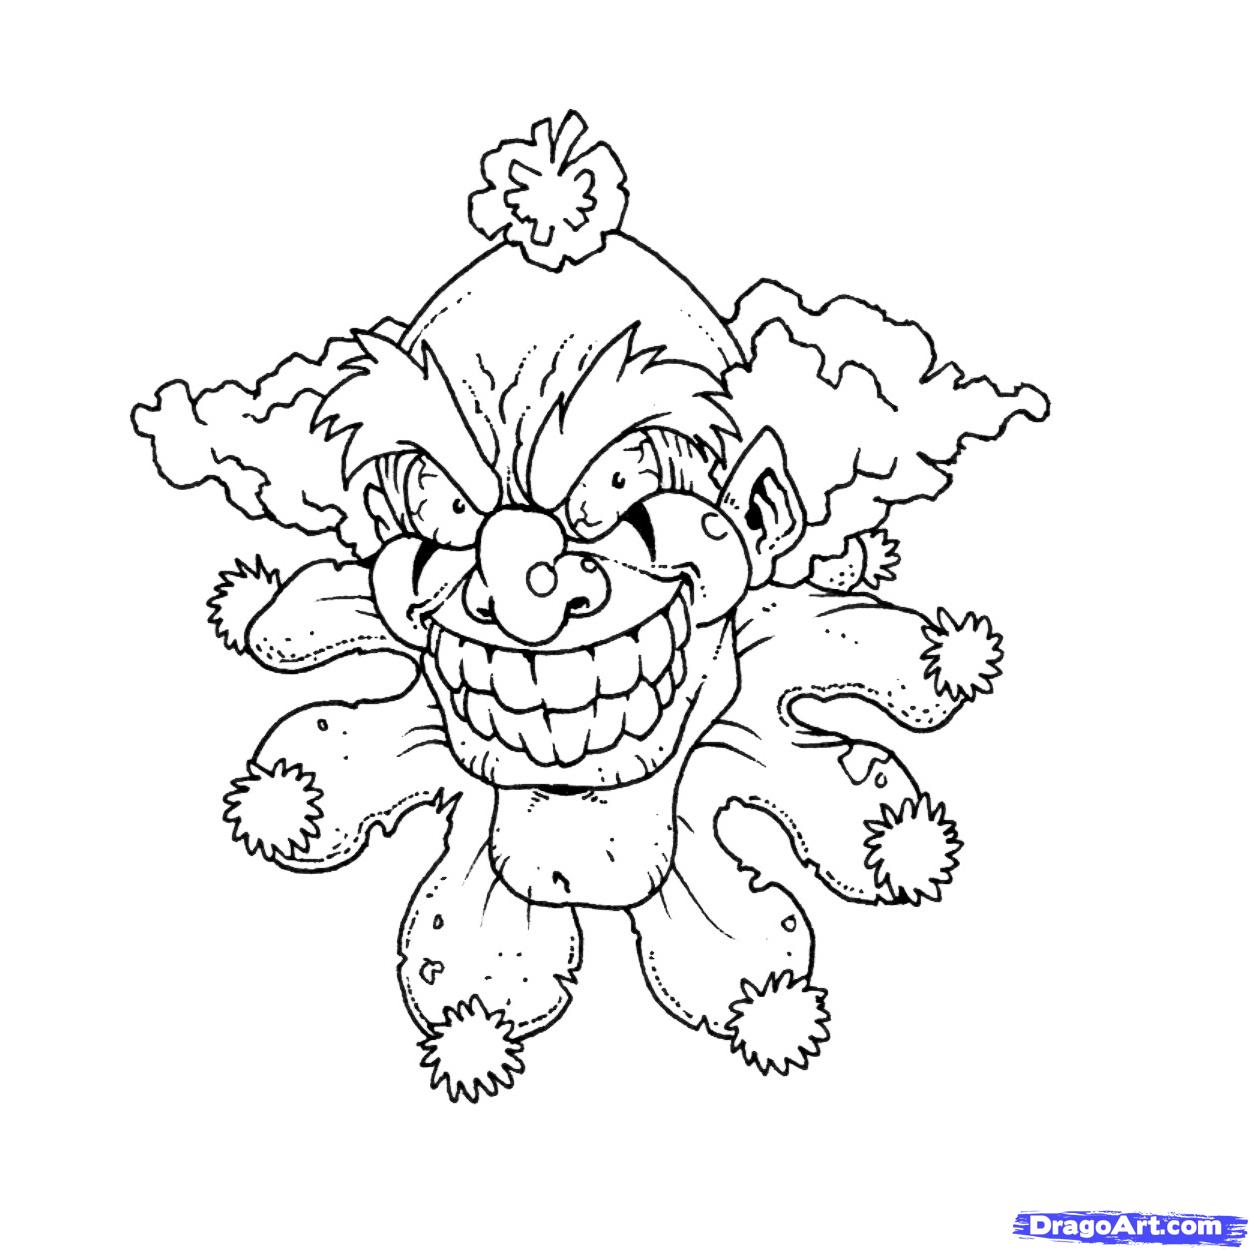 Clowns Drawing at GetDrawings.com | Free for personal use Clowns ...